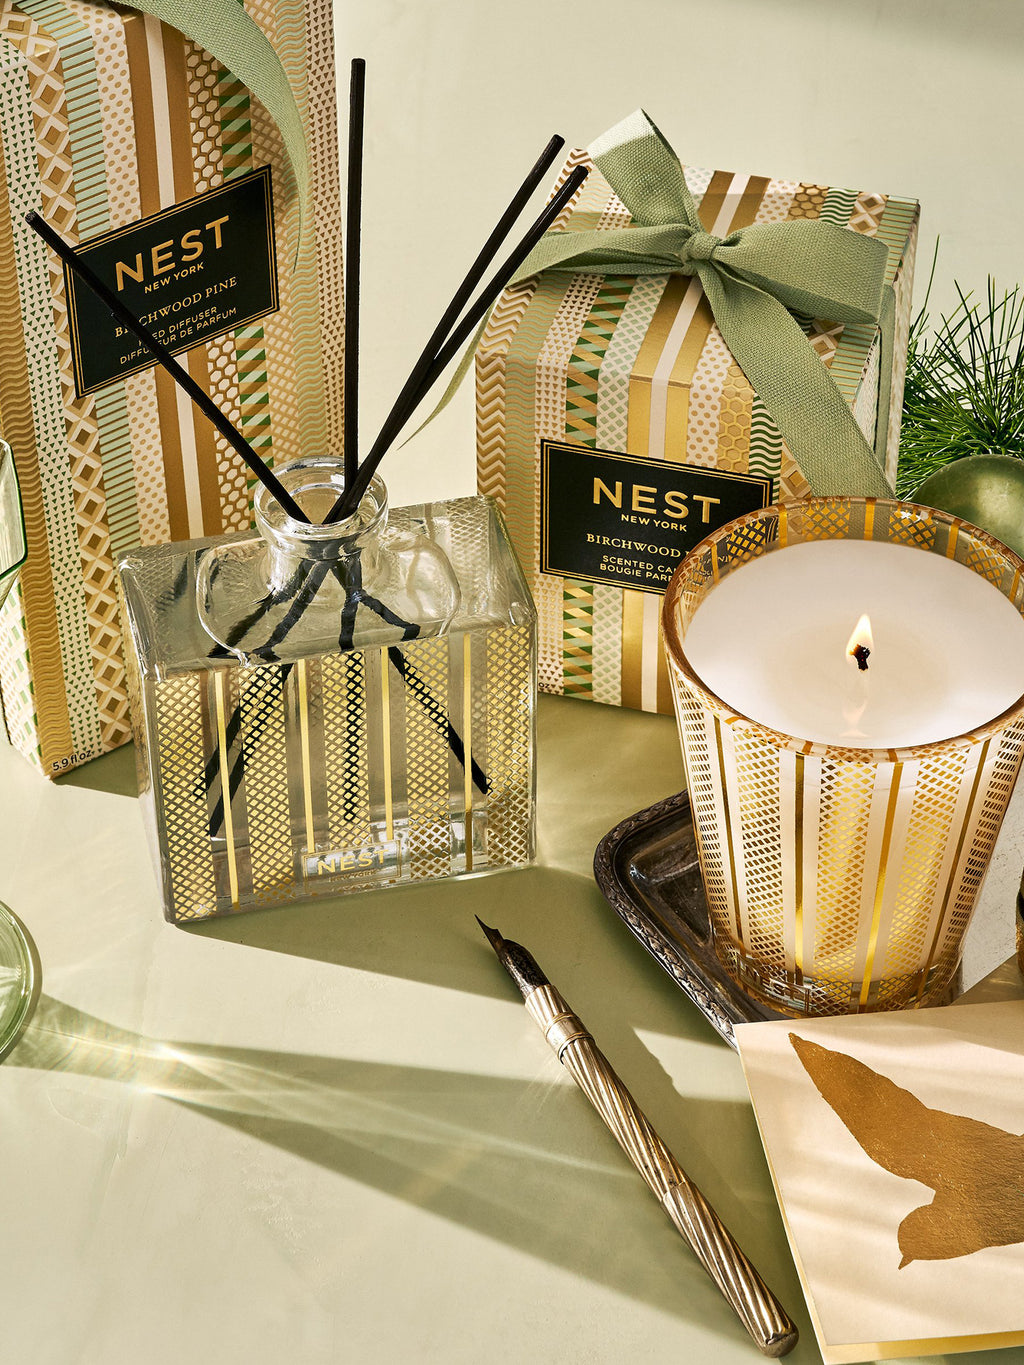 NEST Fragrances Classic Candle, Birchwood Pine